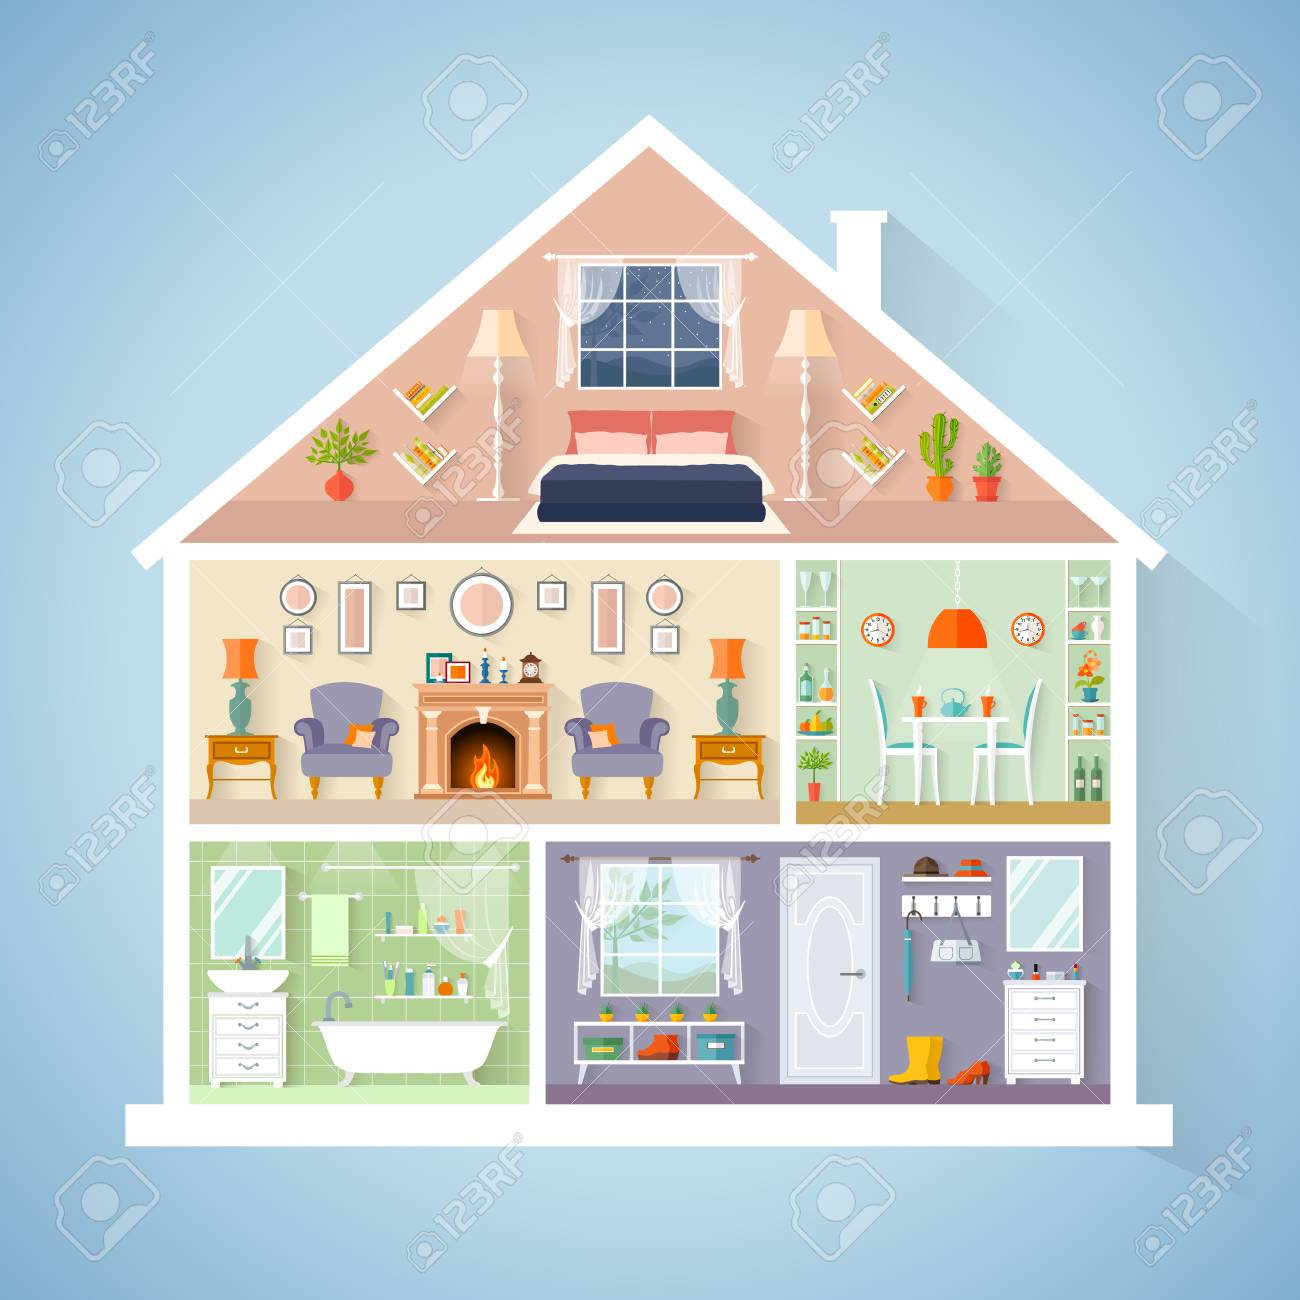 Vector House Model In A Cut Rooms With Furniture Detailed Interior